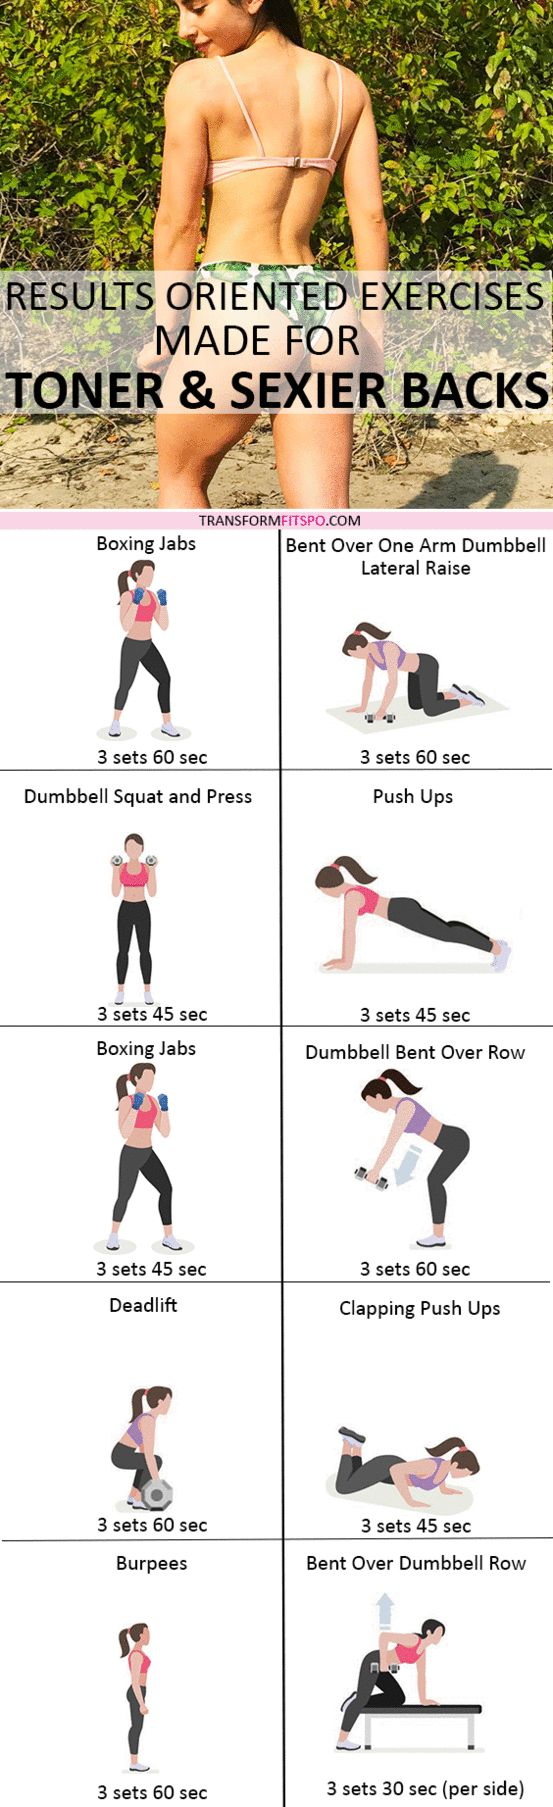 Repin and share if this workout gave you insane back fat blasting results! Read the post for all the exercise descriptions.